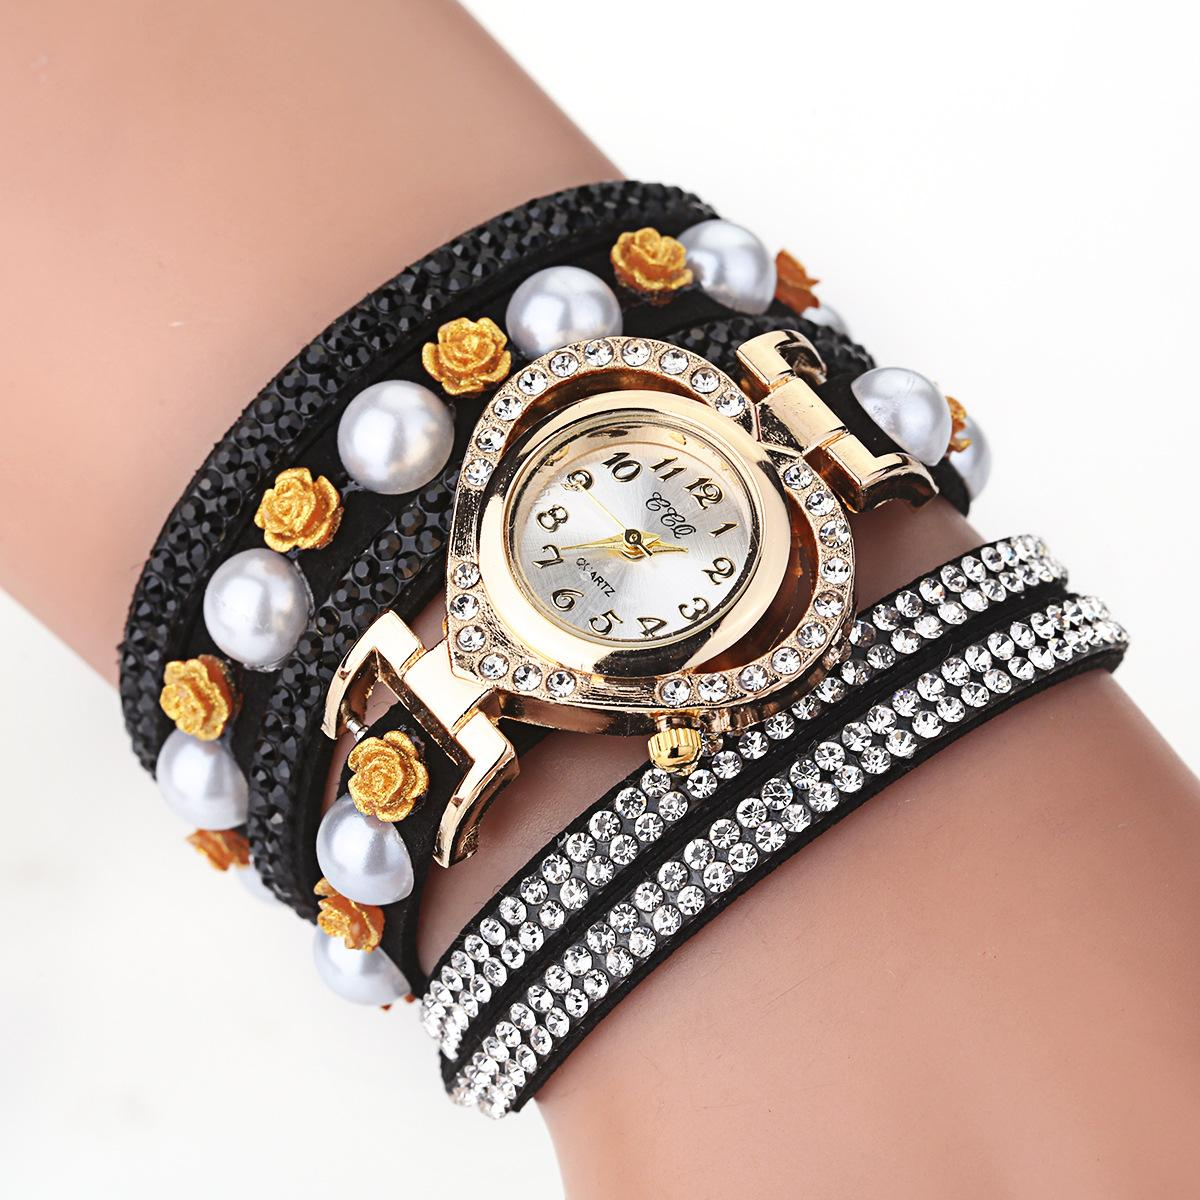 Fashion 2020 Women Dress Quartz Wrist Watch Luxury Gold Rhinestone Bracelet Heart-shaped Design Clock Ladies Elegant Reloj Mujer